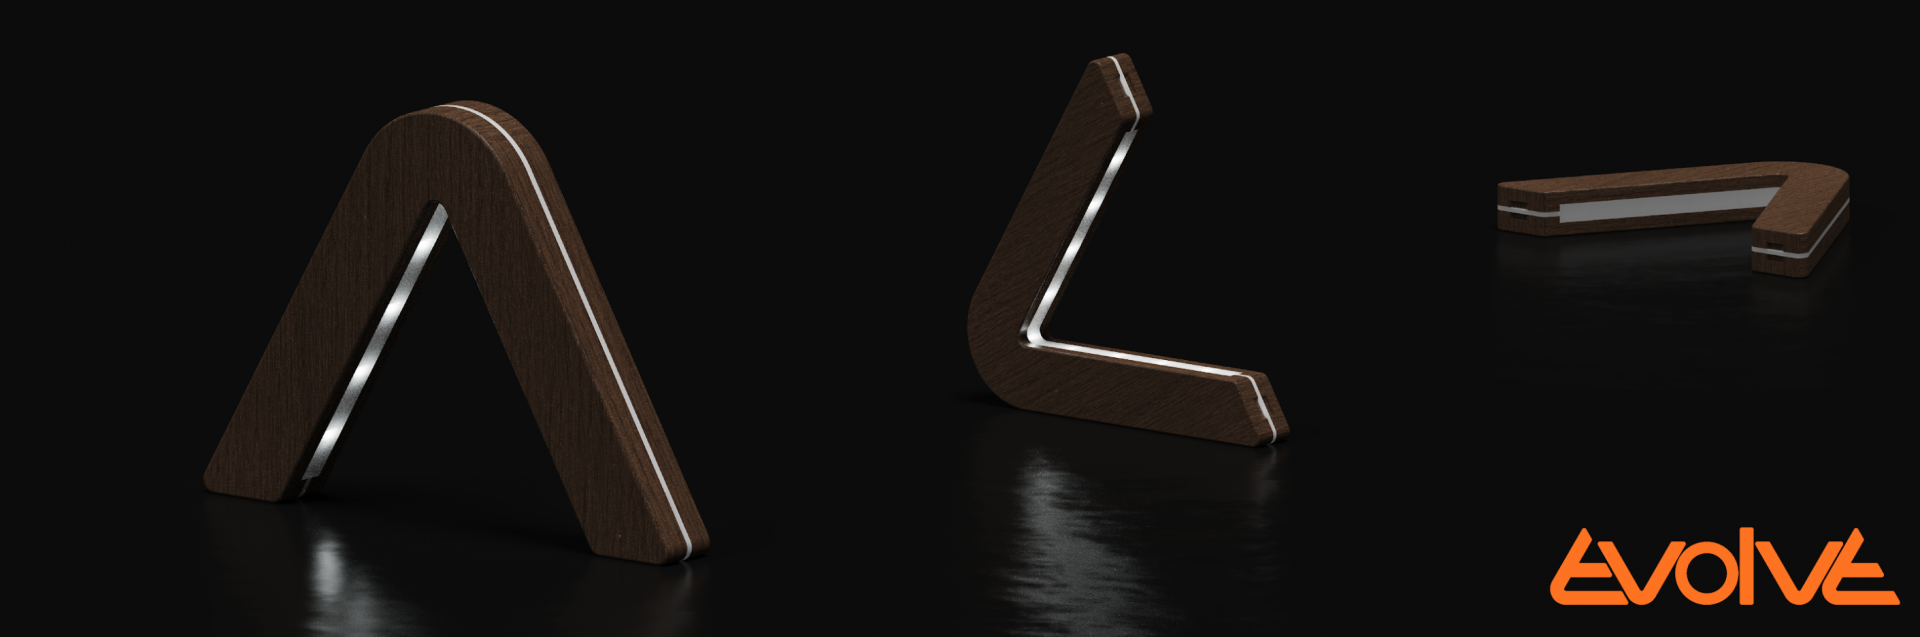 Three renders of a boomerang shaped lighting feature